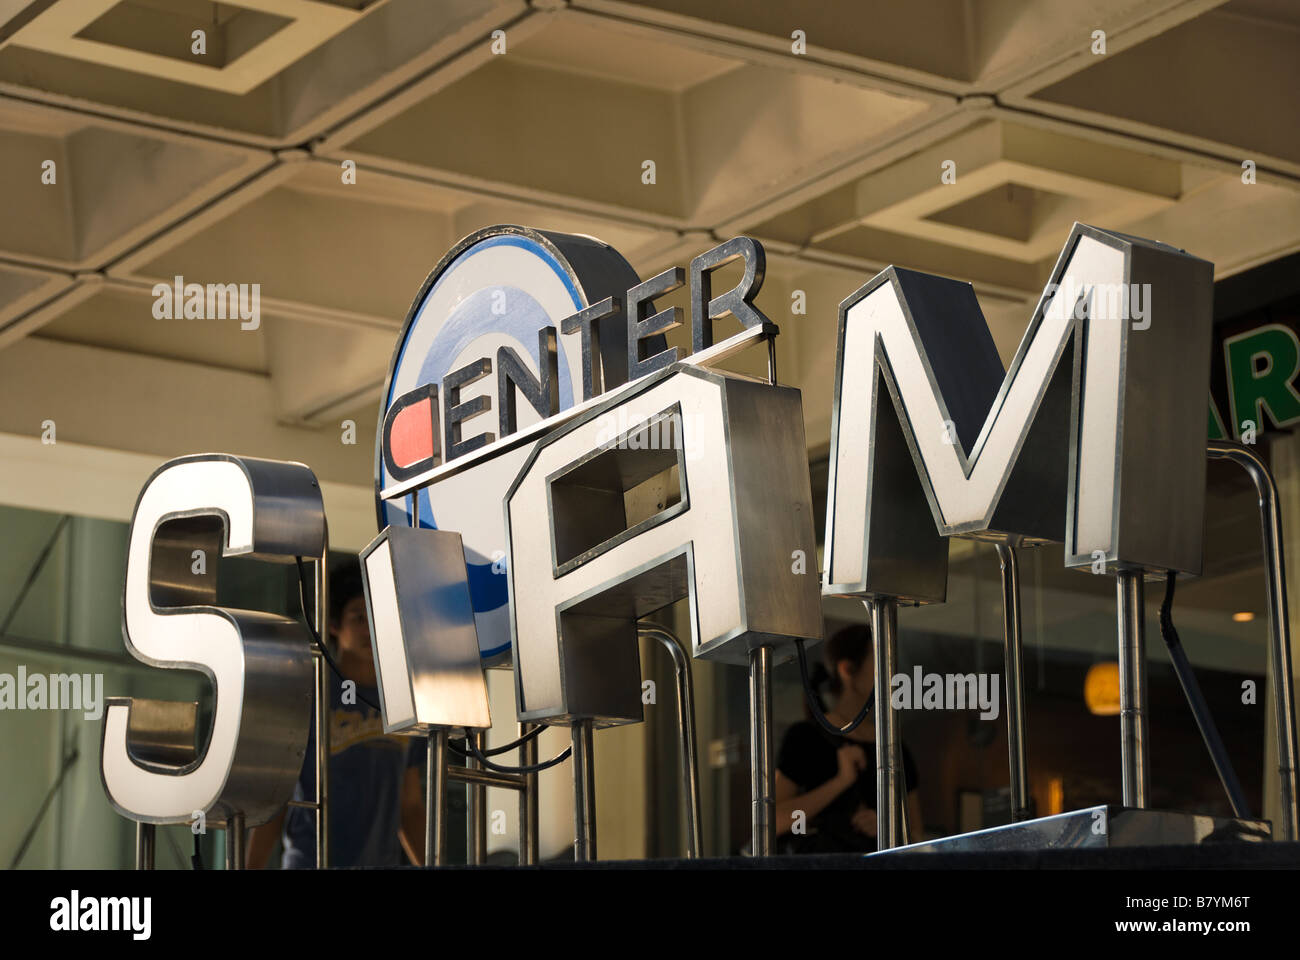 Siam Center upmarket shopping mall sign Pathumwan district in central Bangkok Thailand - Stock Image